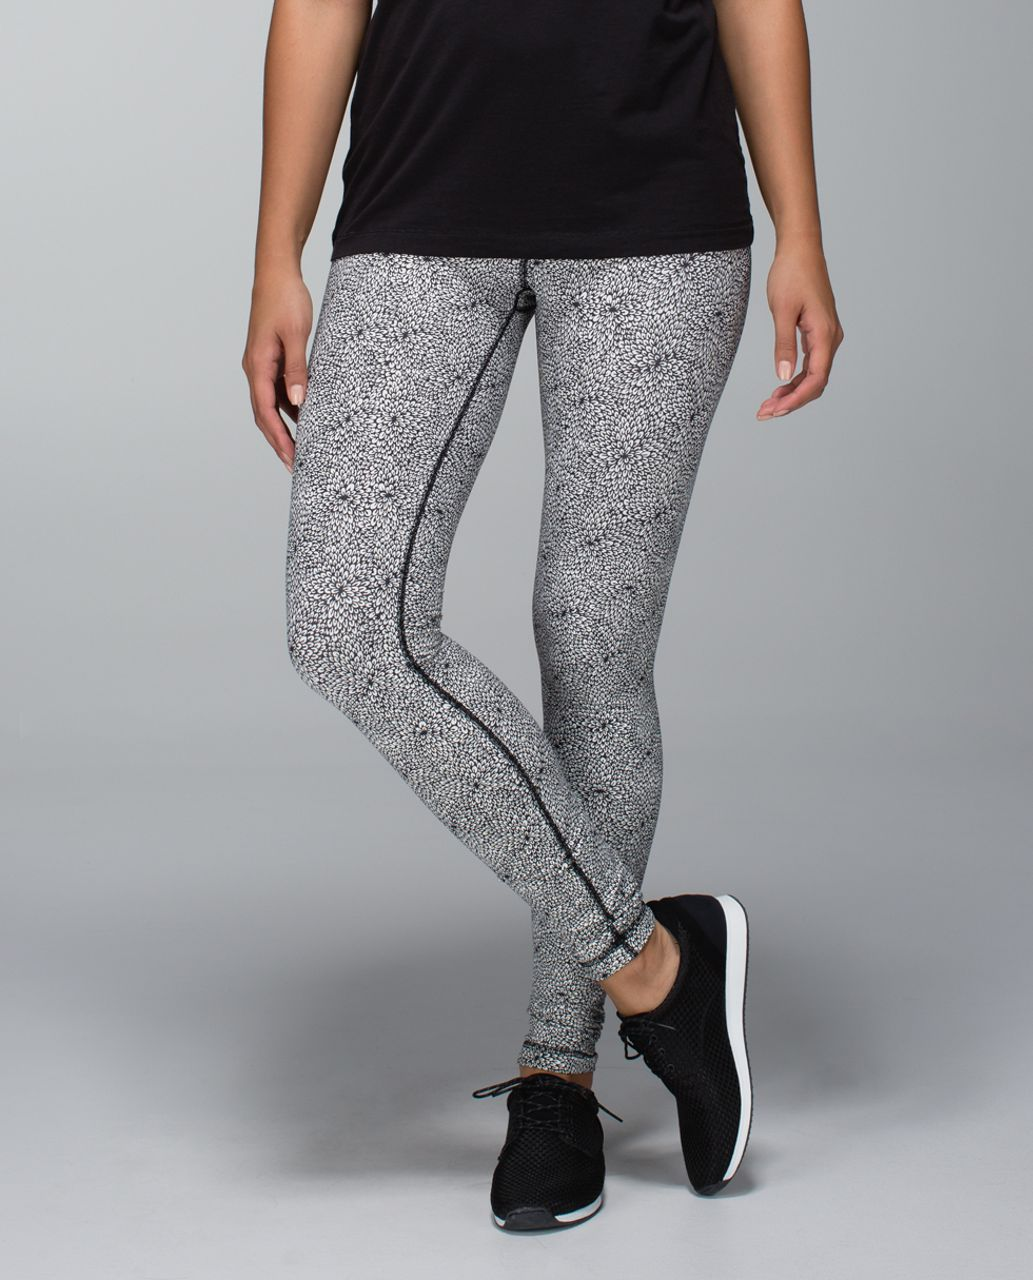 Lululemon Wunder Under Pant - Plush Petal Deep Coal Ghost